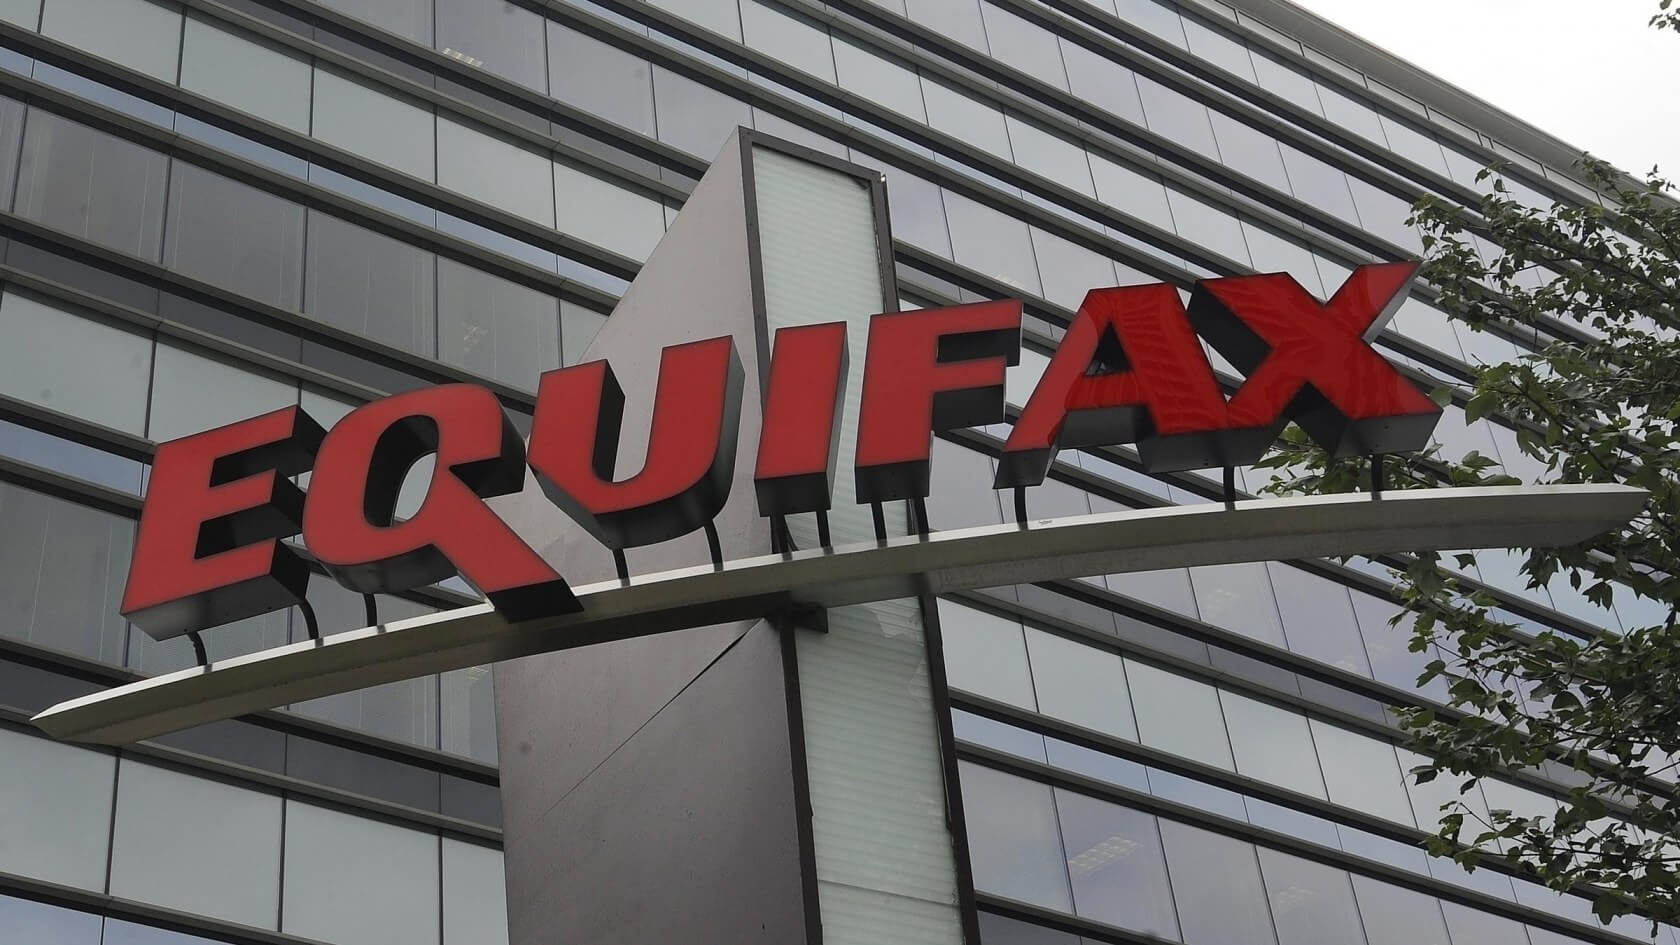 Class action lawsuit claims Equifax used the default 'admin' credentials during 2017 data breach